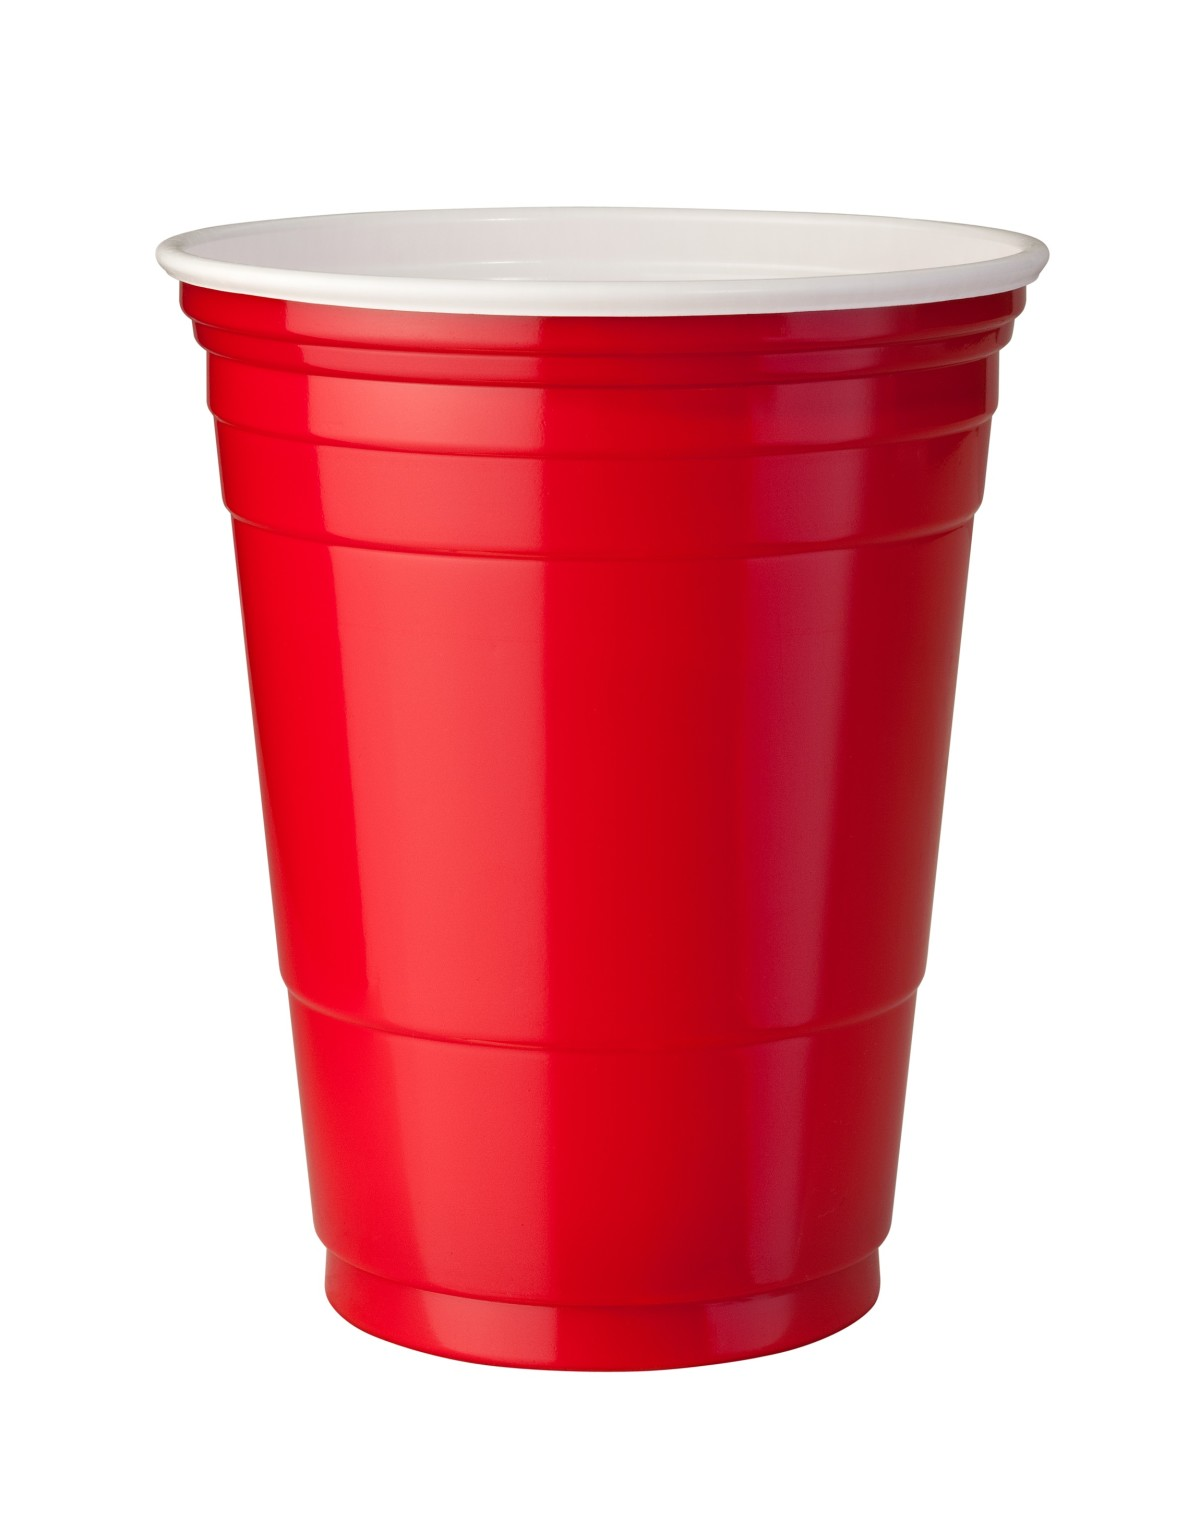 """Solo"", źródło: https://images.britcdn.com/wp-content/uploads/2015/07/red-solo-cup.jpg"